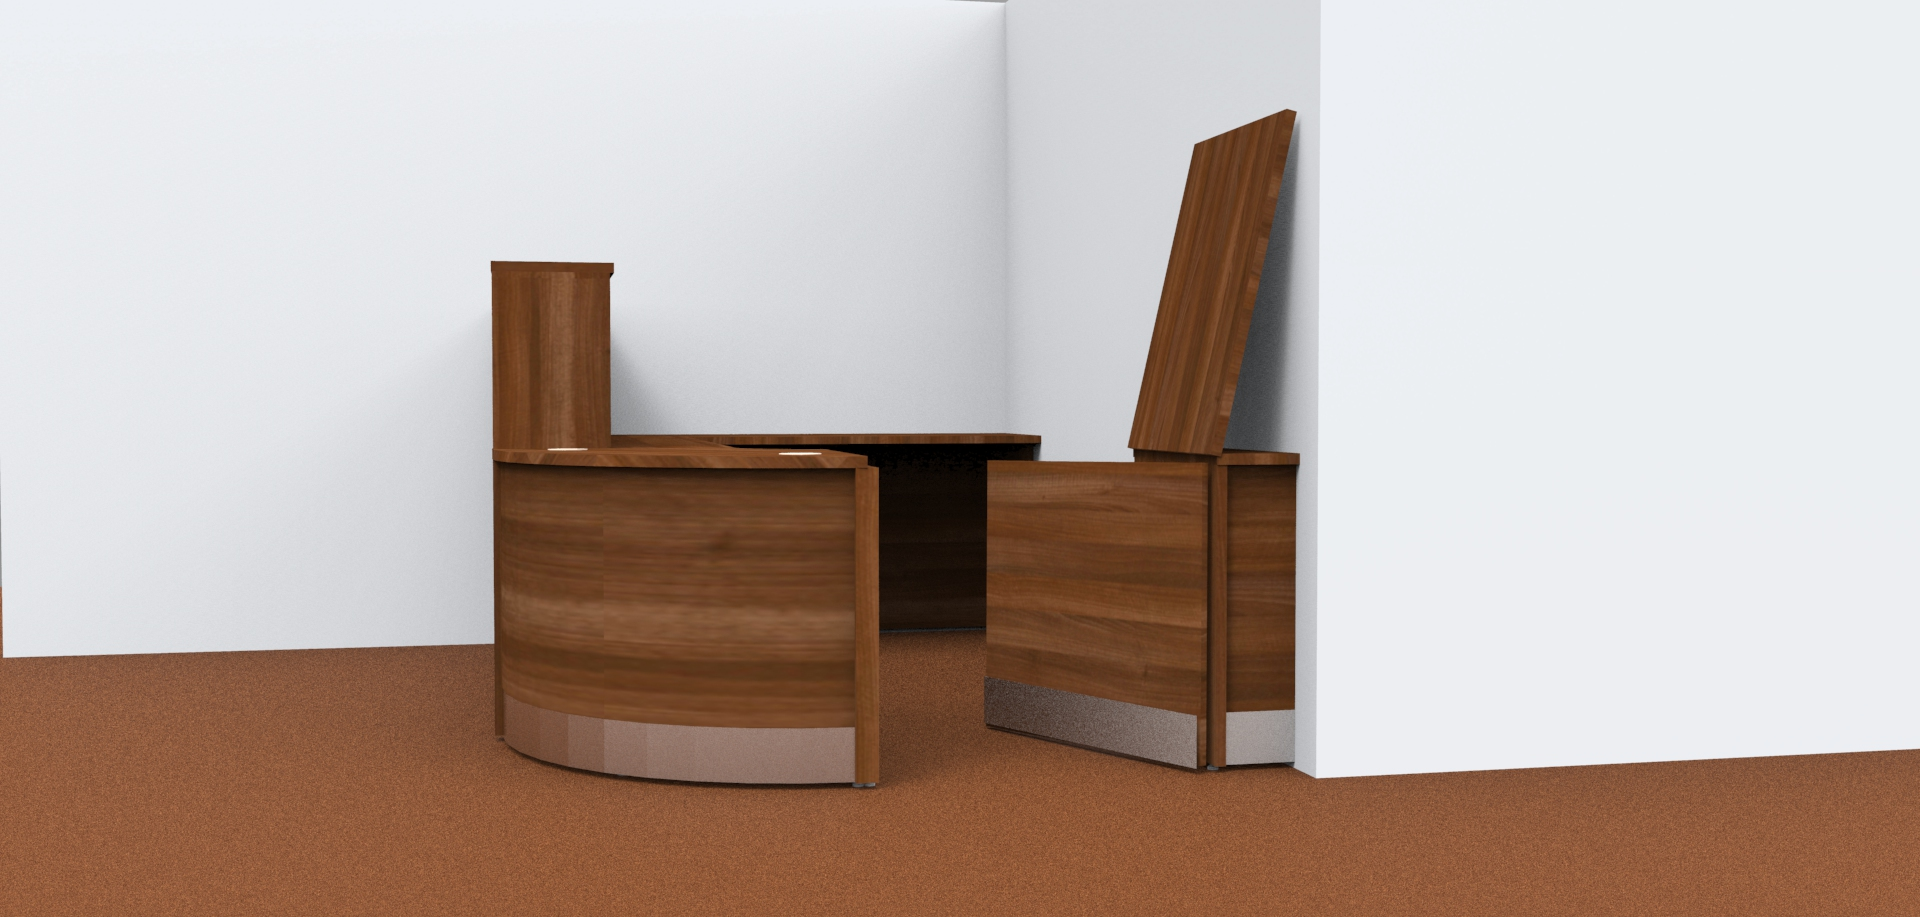 Render- Flex modular reception desk with a gate and flap open